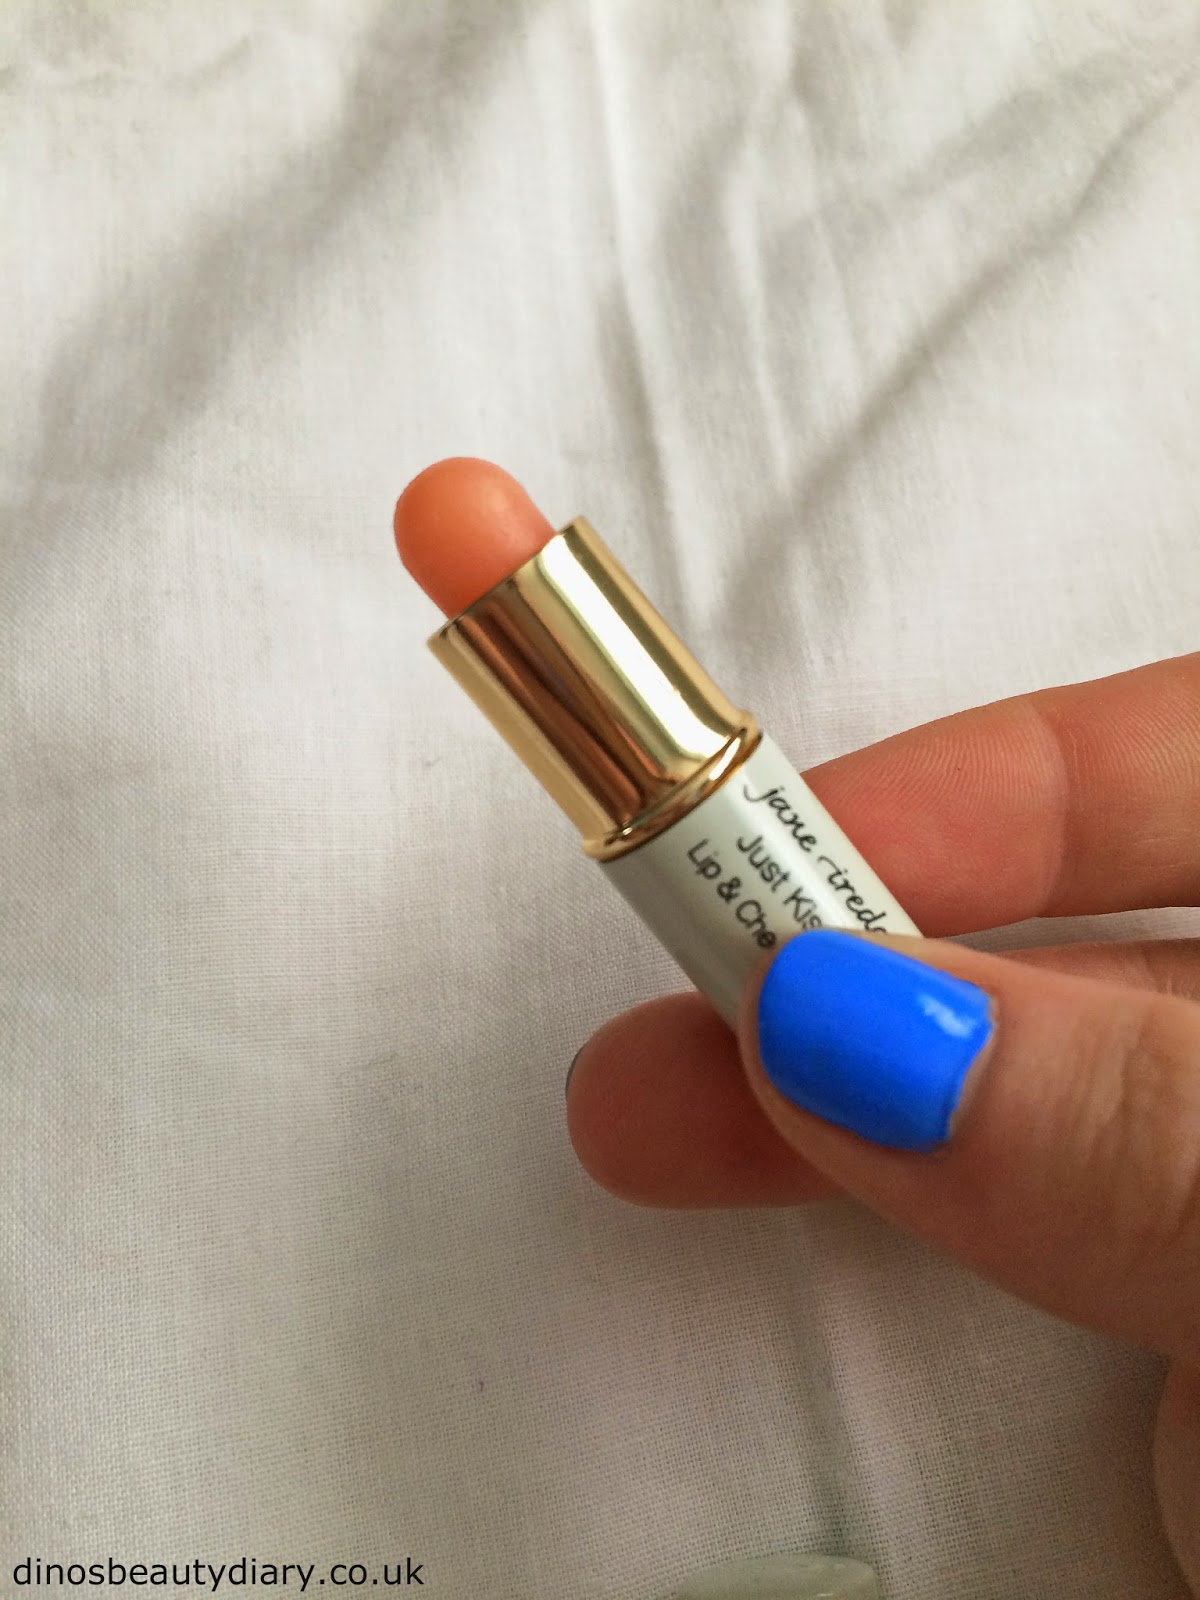 Dinos Beauty Diary - June and July Birchbox - Jane Iredale Cheek and Lip Stain